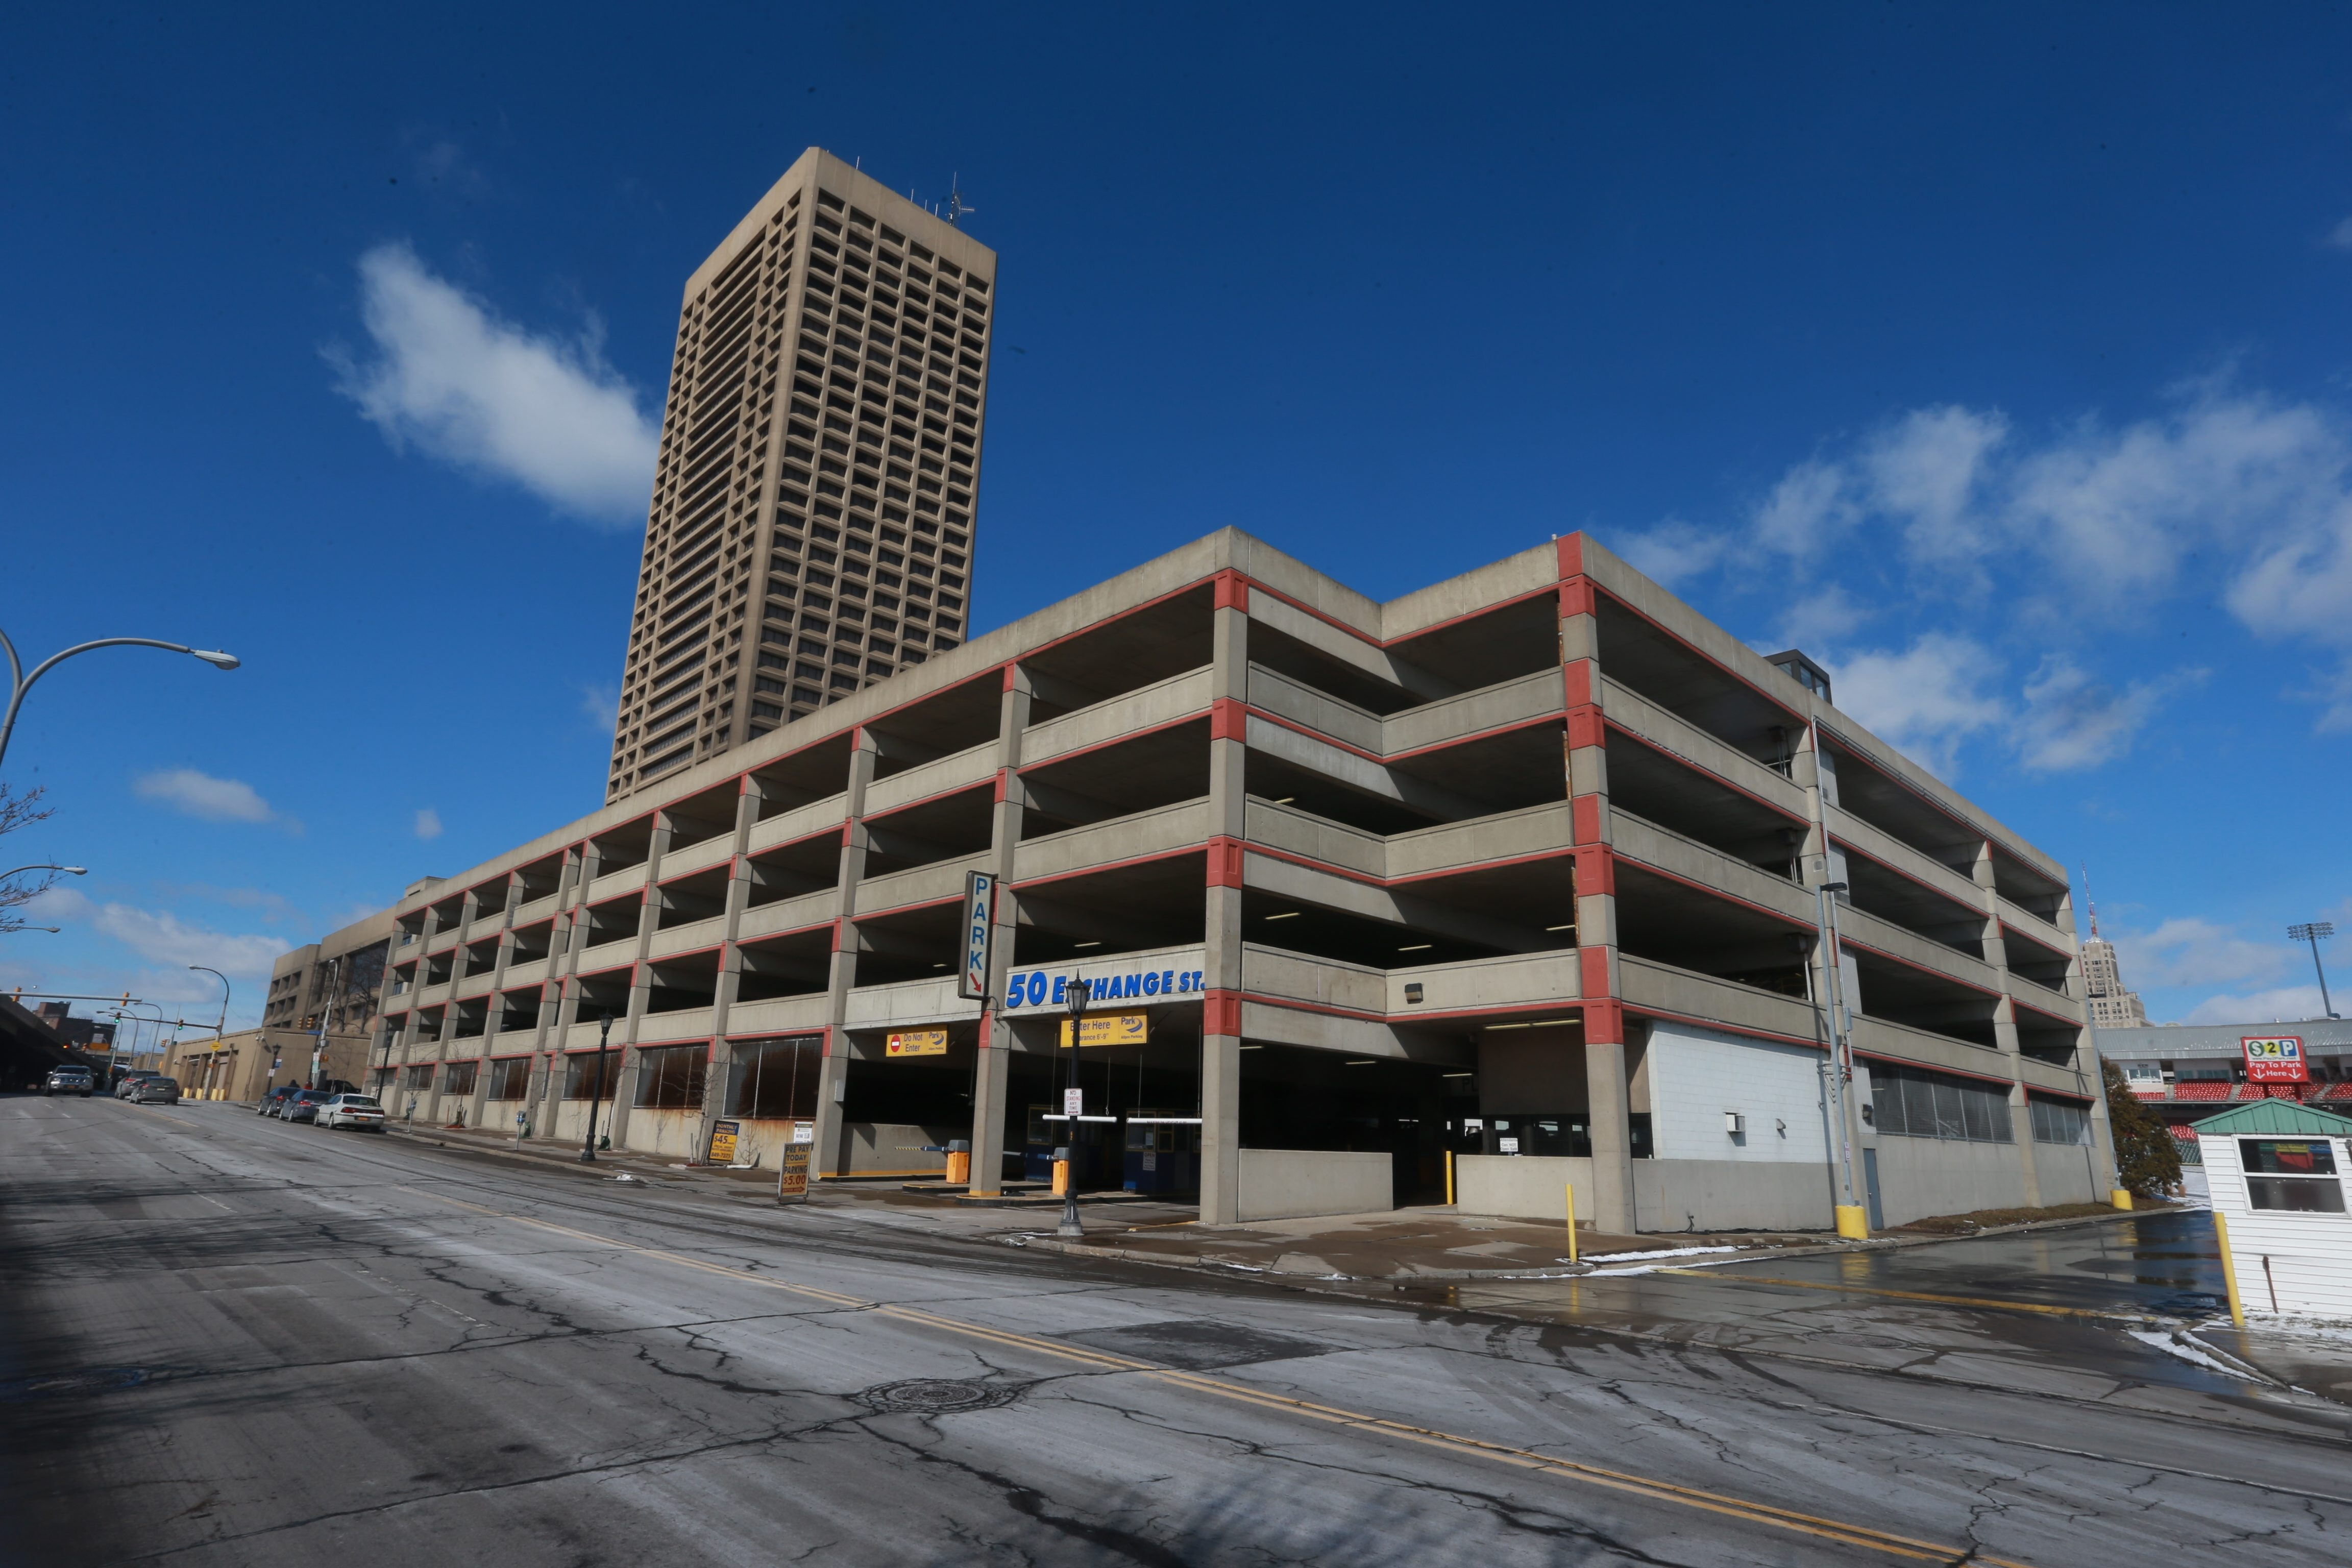 The One Seneca Tower parking garage was purchased at auction Friday for $7.7 million by LNR Partners after a bidding war that included local developer Mark Croce and New York businessman Harvey Kaylie.